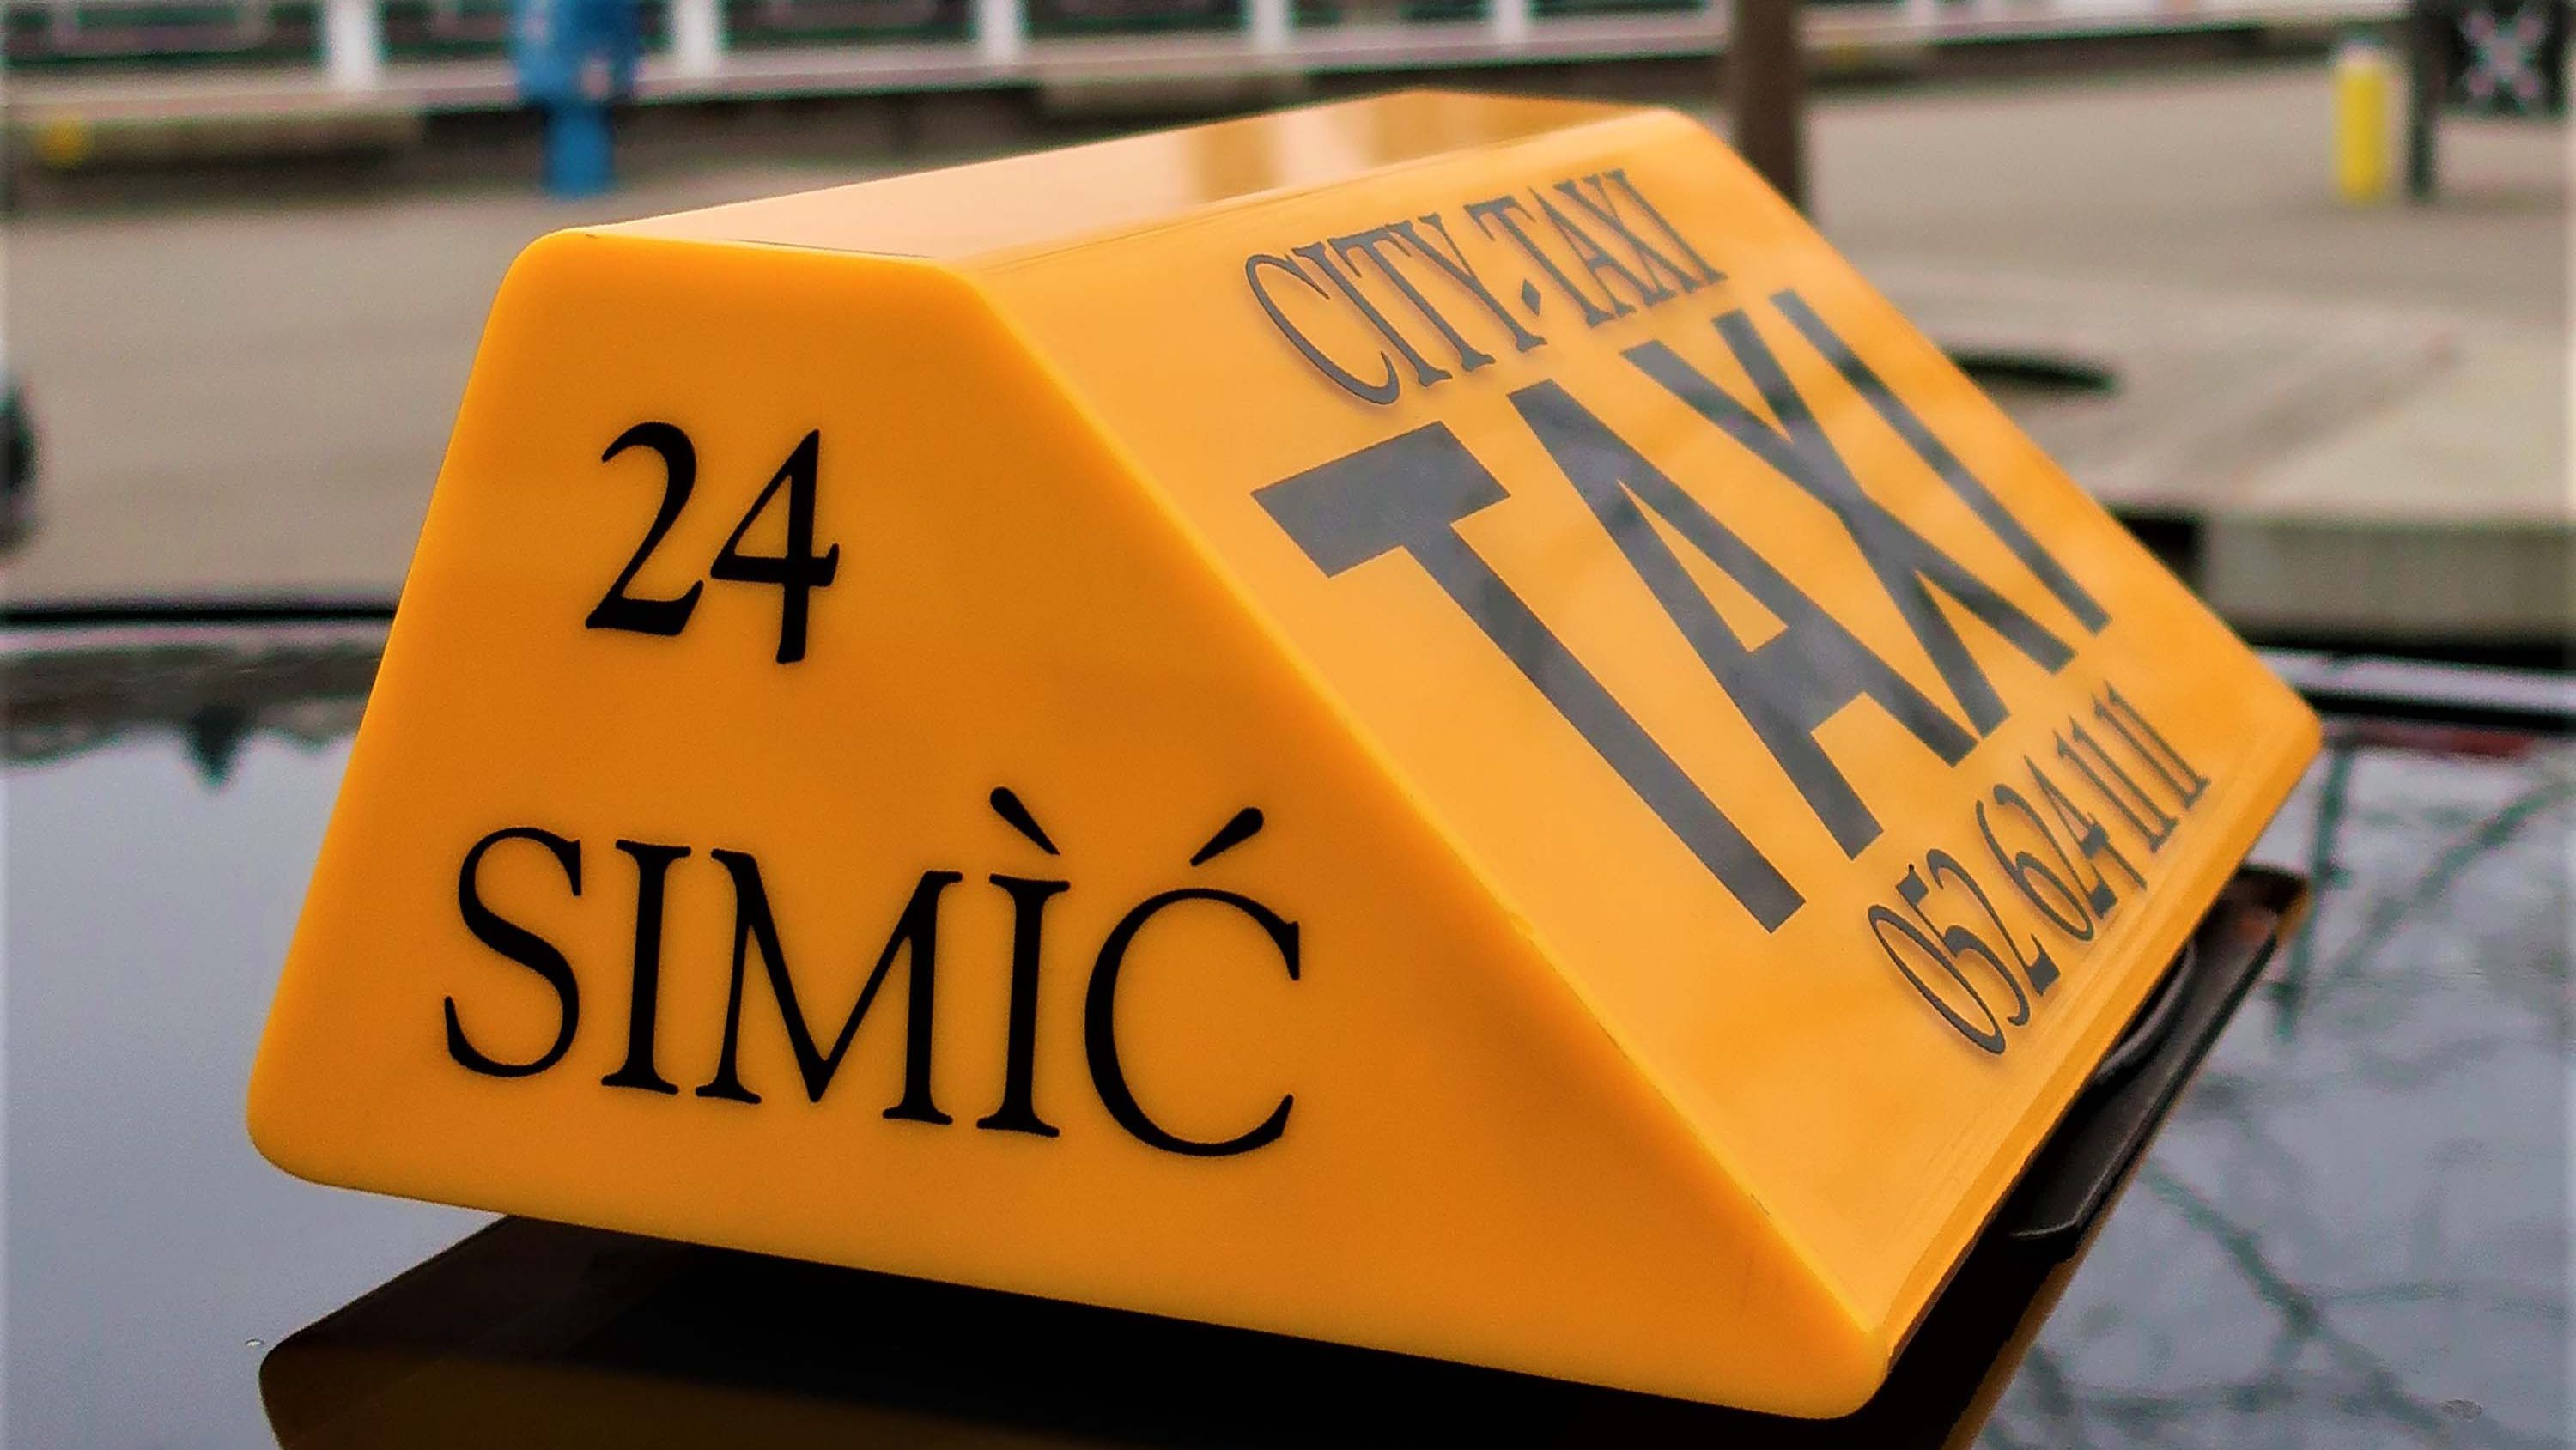 taxi angebot - city taxi simic - schaffhausen